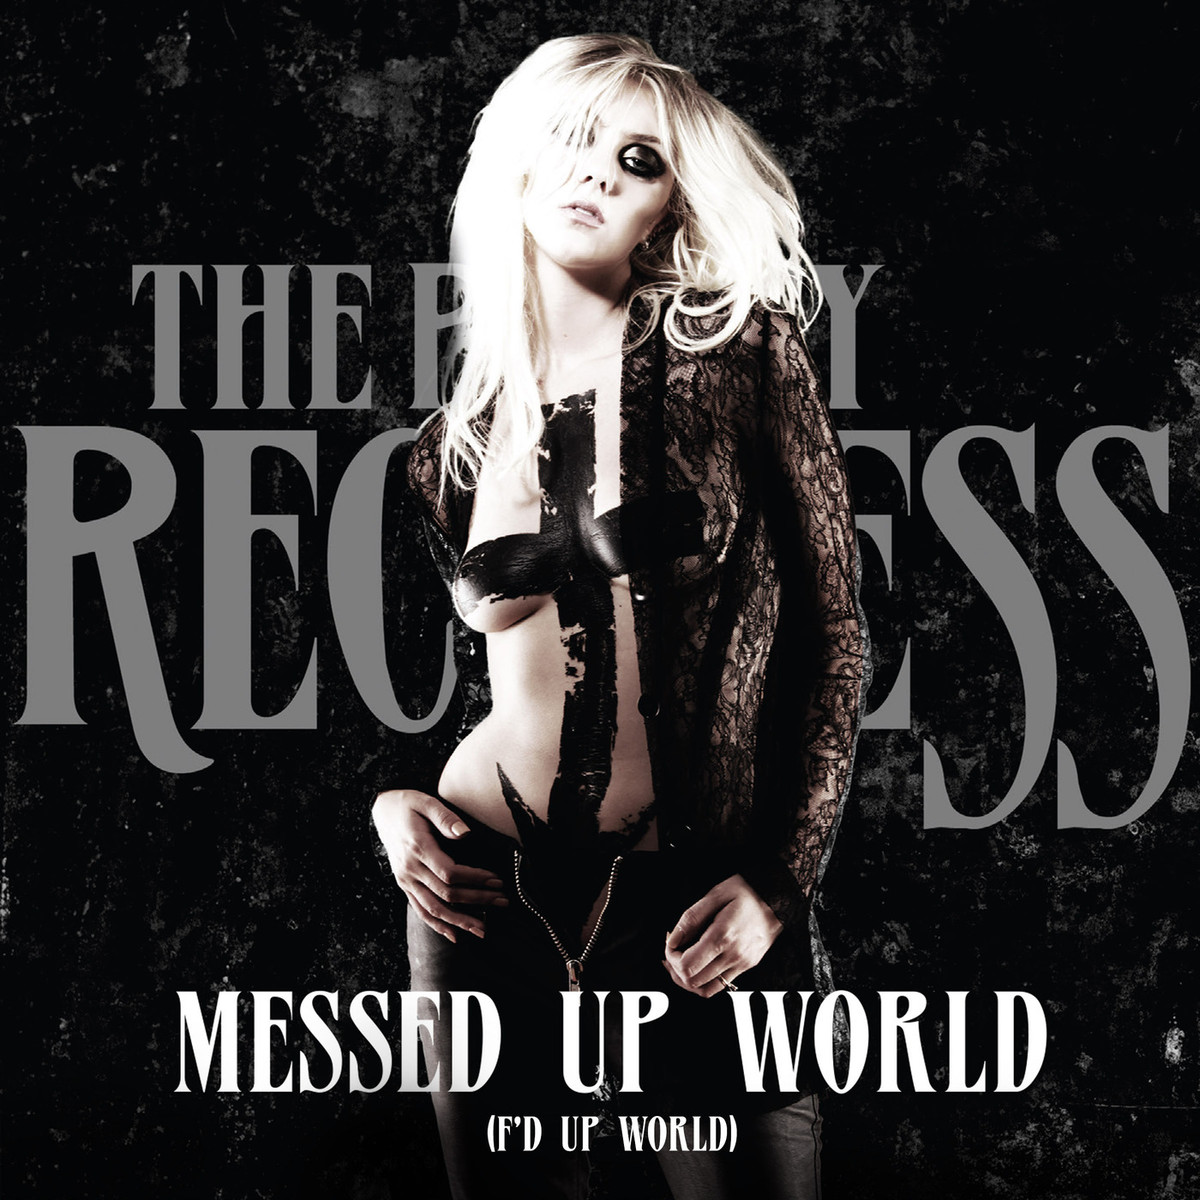 Текст и перевод песни The Pretty Reckless - Messed Up World (F'd Up World)